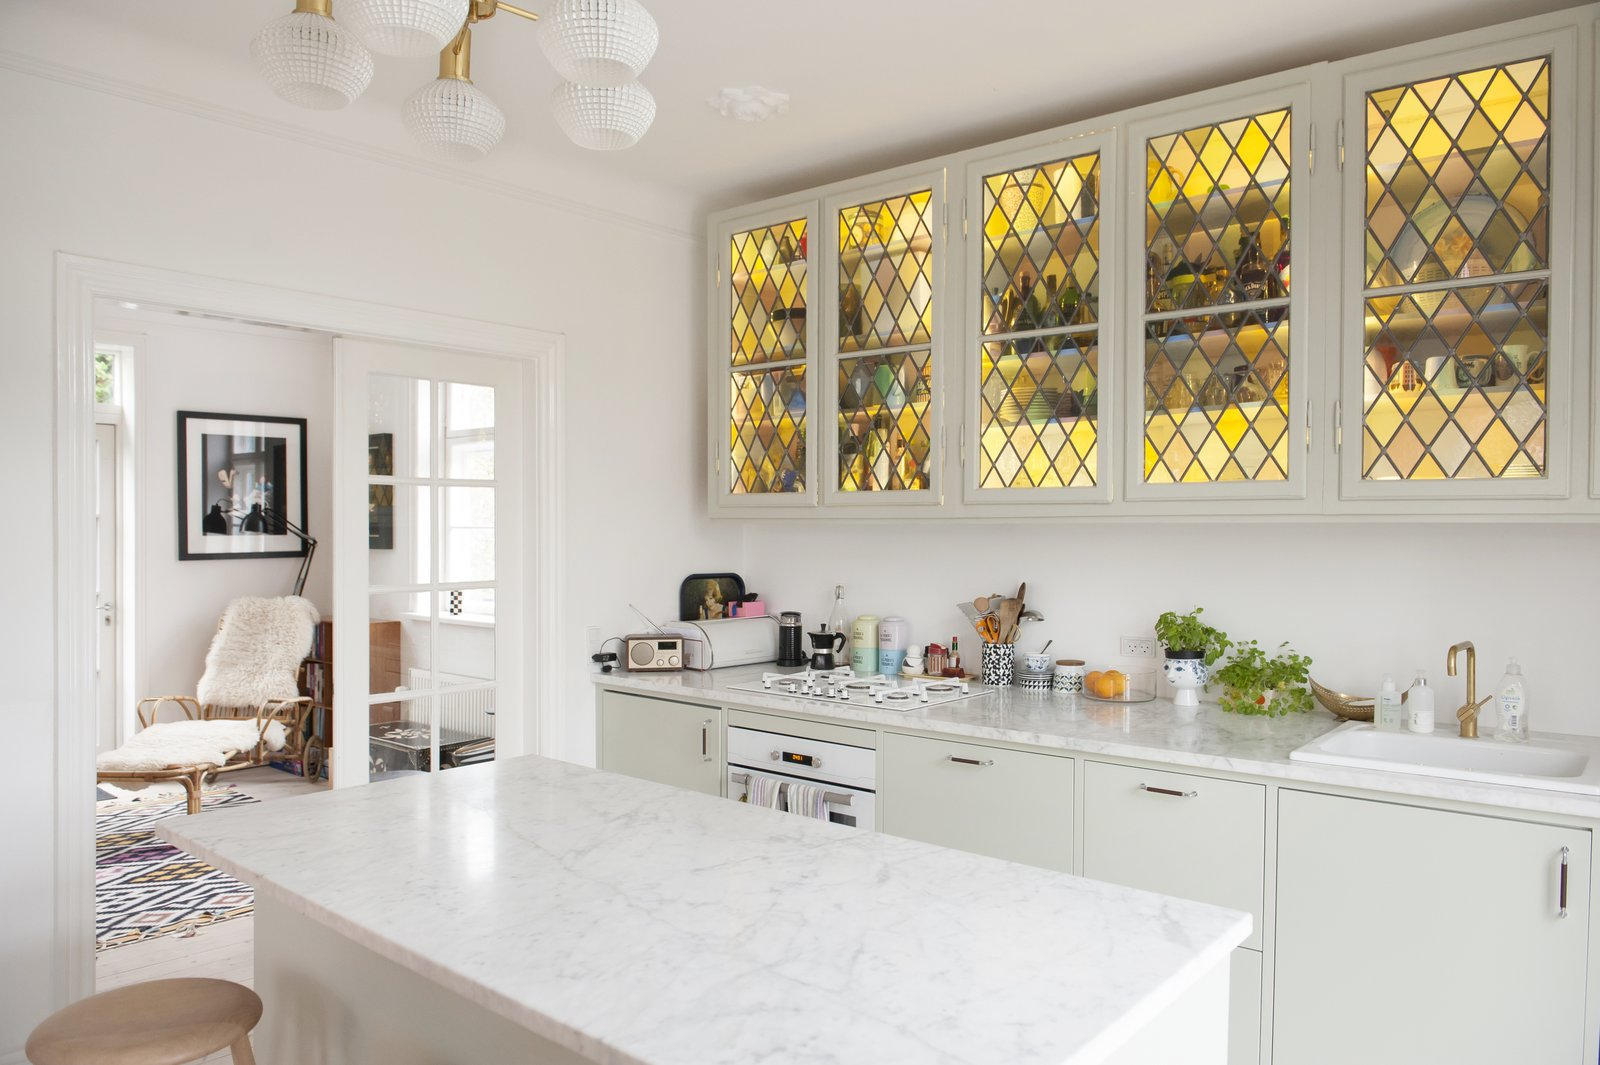 Kitchen, Marble Counter, Dishwasher, Range, Colorful Cabinet, Ceiling Lighting, and Drop In Sink Sleek white kitchen is given a pop of color and old world charm with yellow stained glass cabinets. Luxurious marble countertop and island are also featured.  Colorful & Eclectic Danish Home by Petra Ford